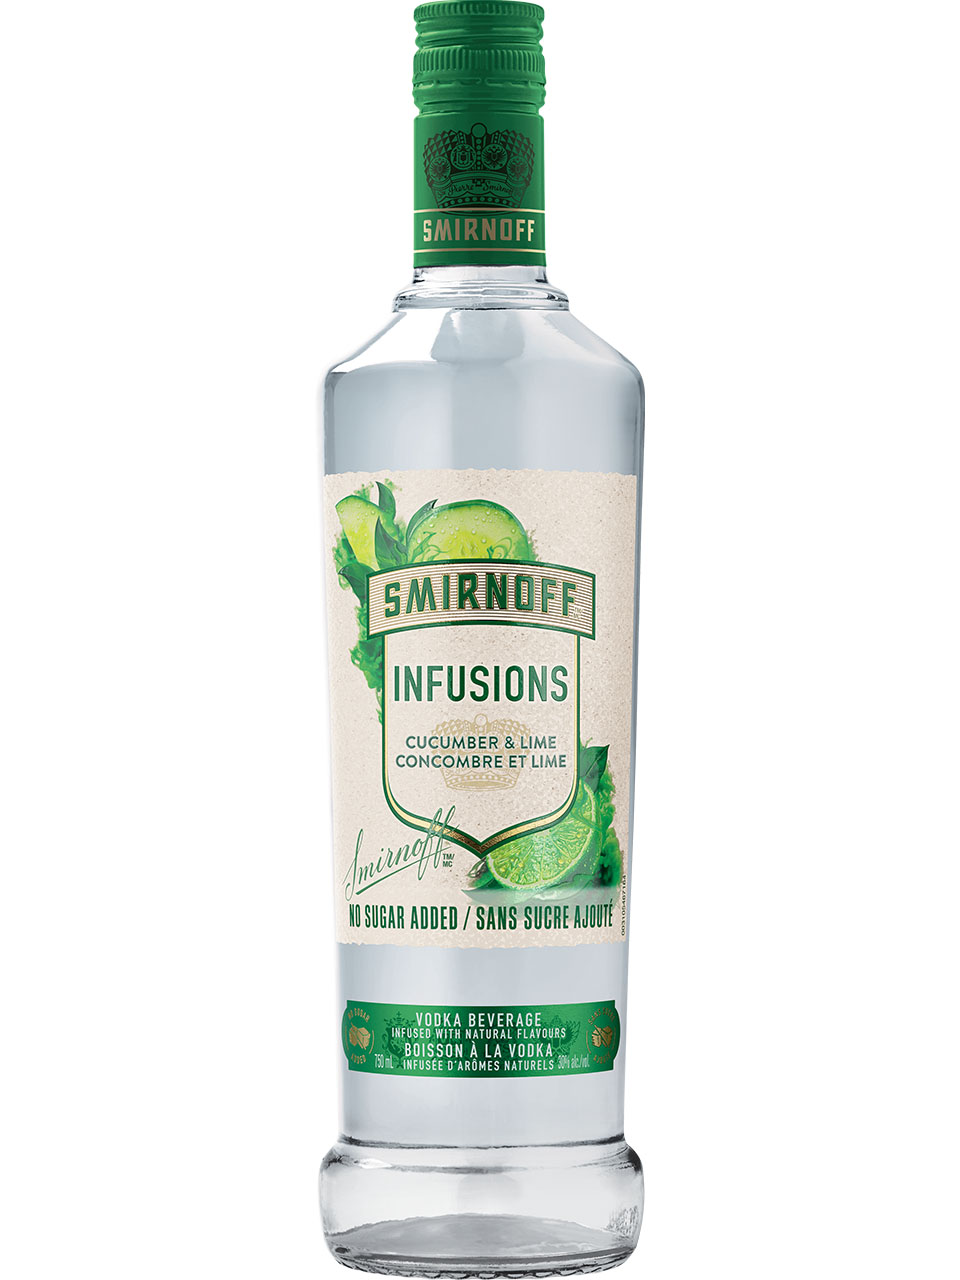 Smirnoff Infusions Cucumber & Lime Vodka